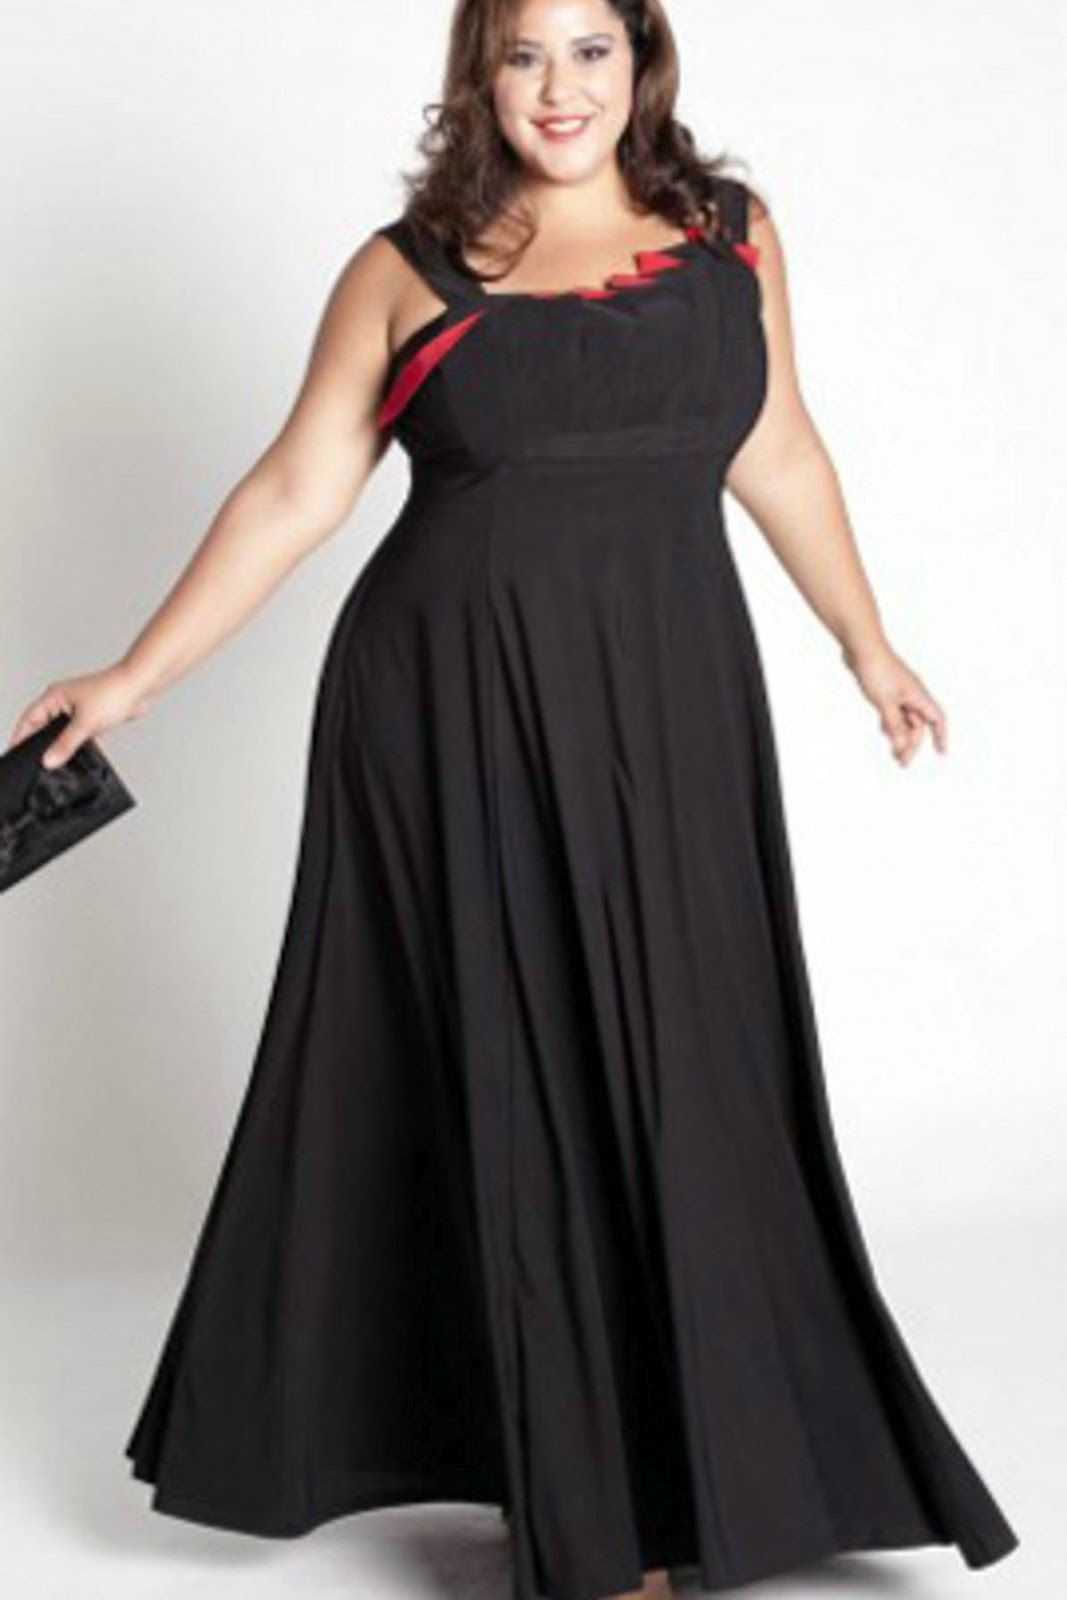 Plus size wedding dress rental  Looking forward to being able to dress in sleeveless  maybe mother